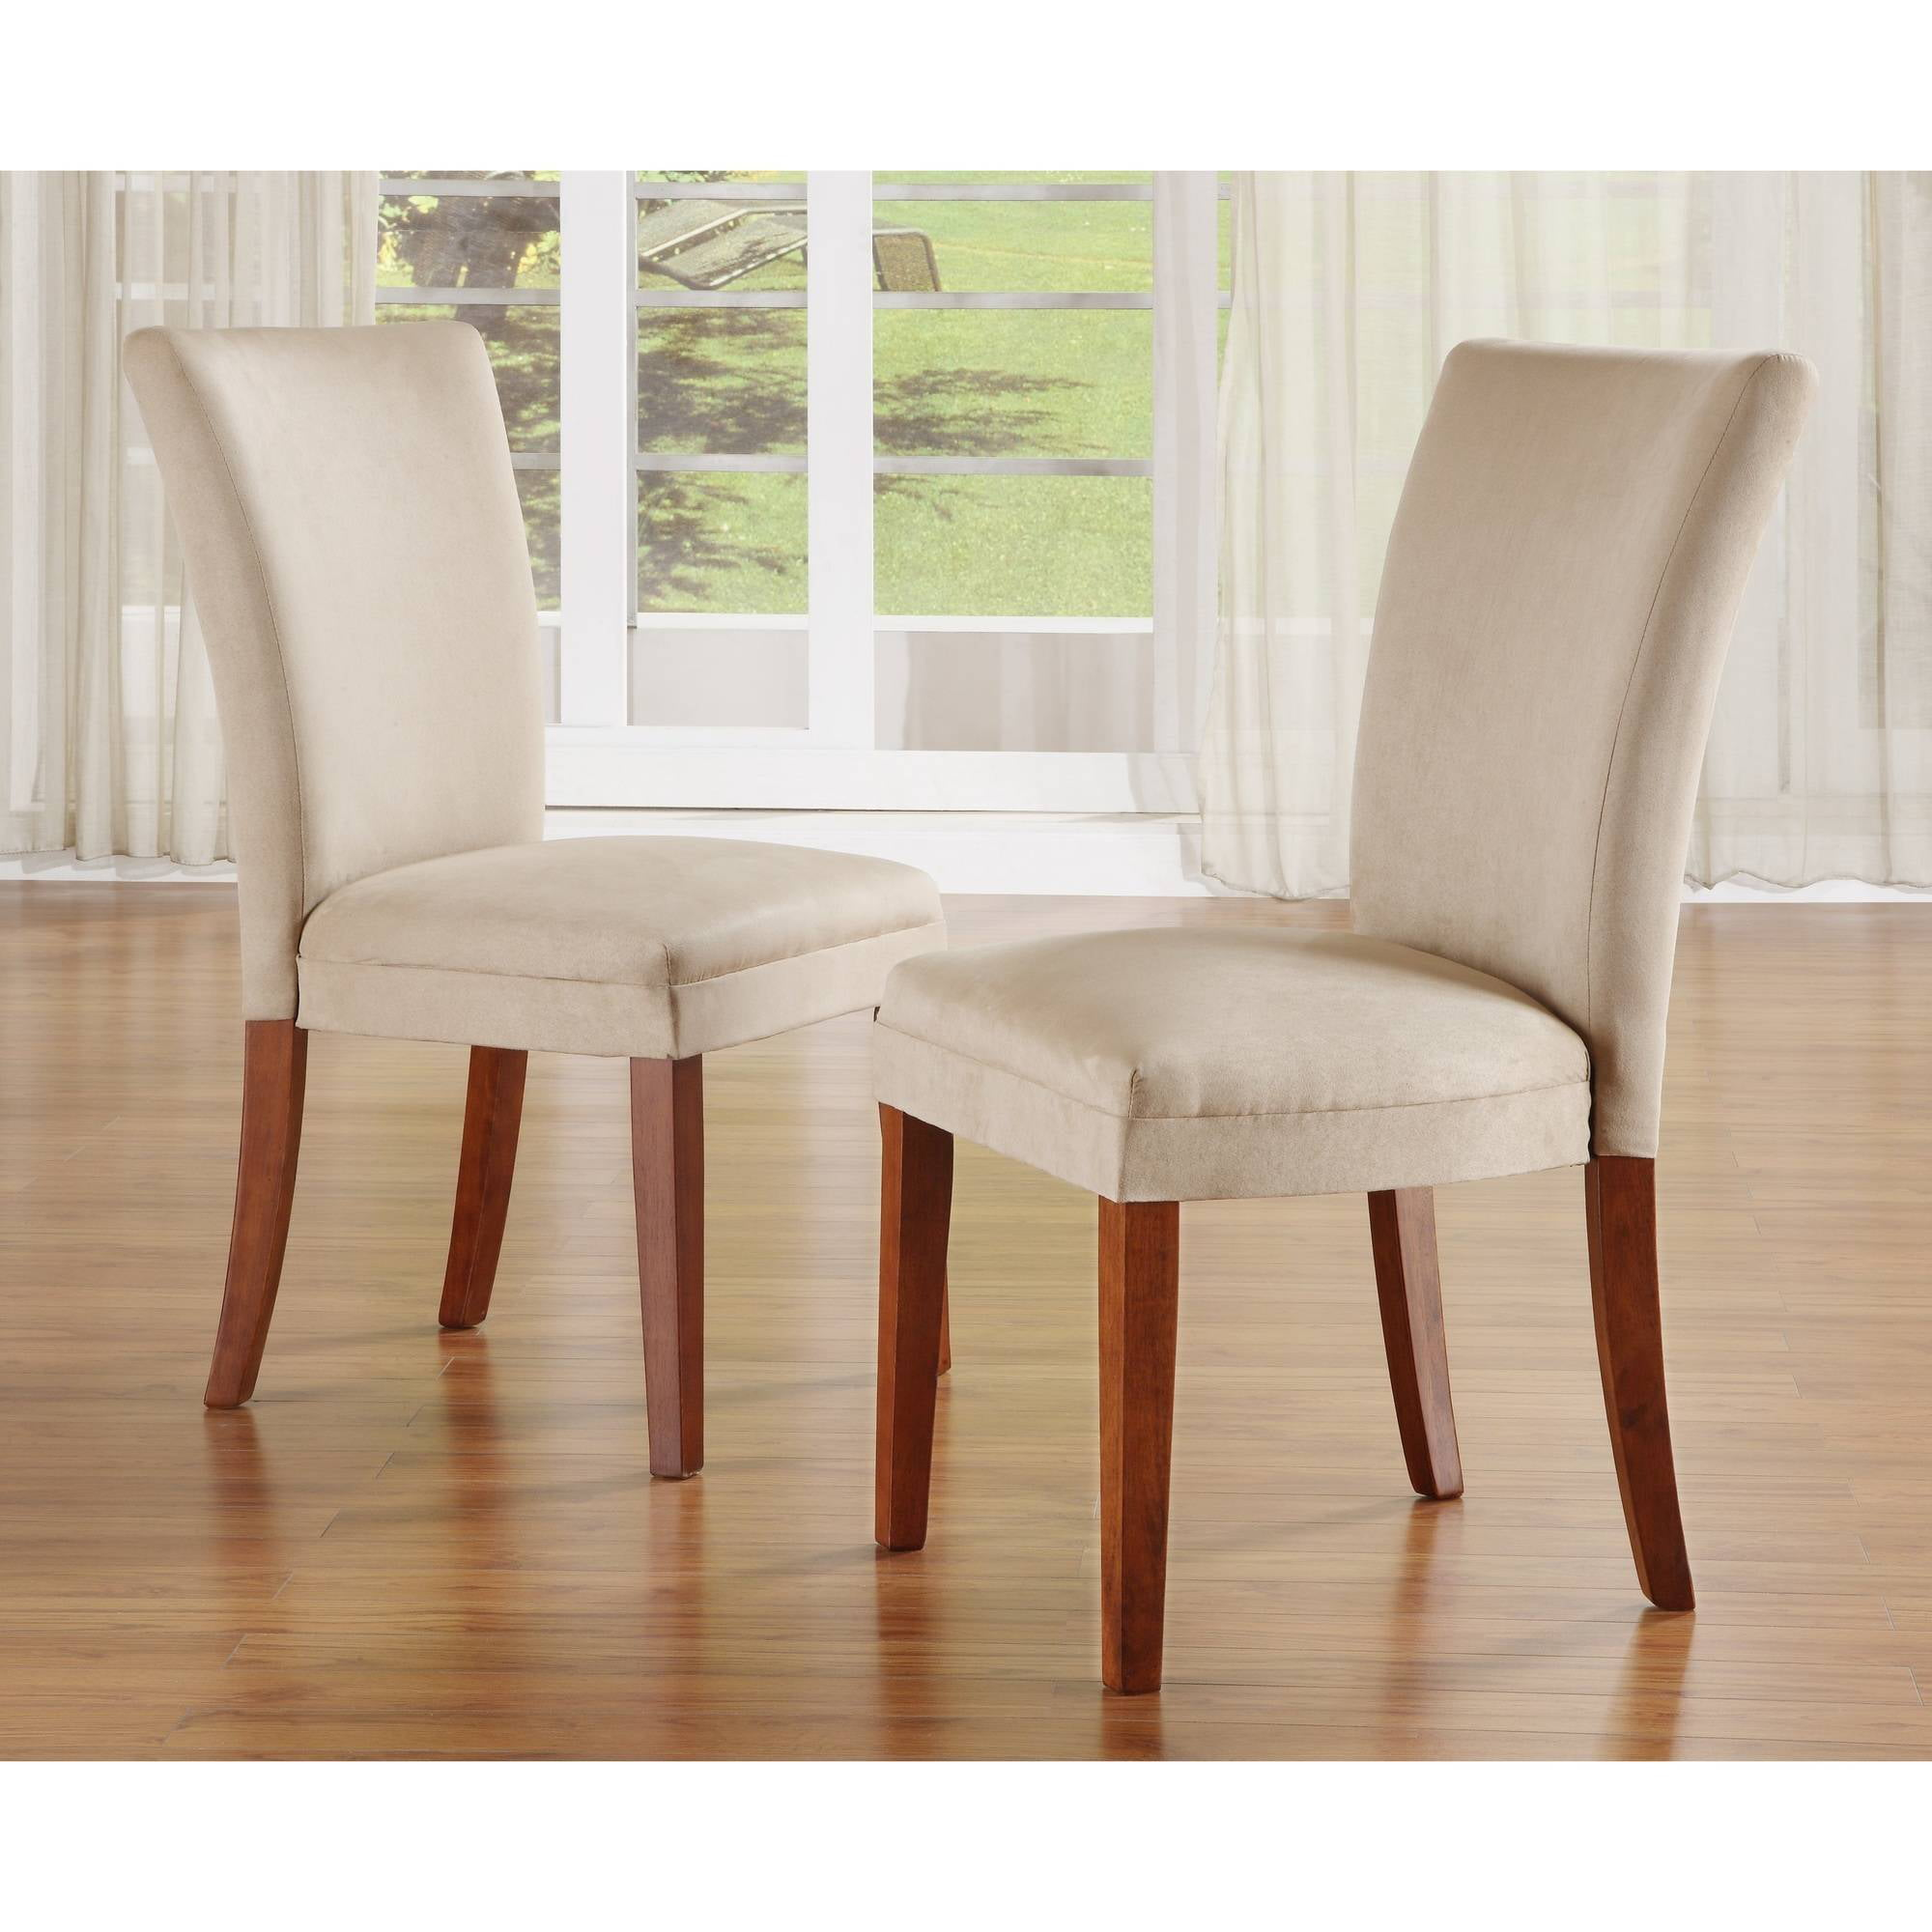 Set of 2 Parson Dining Chairs Peat Walmart